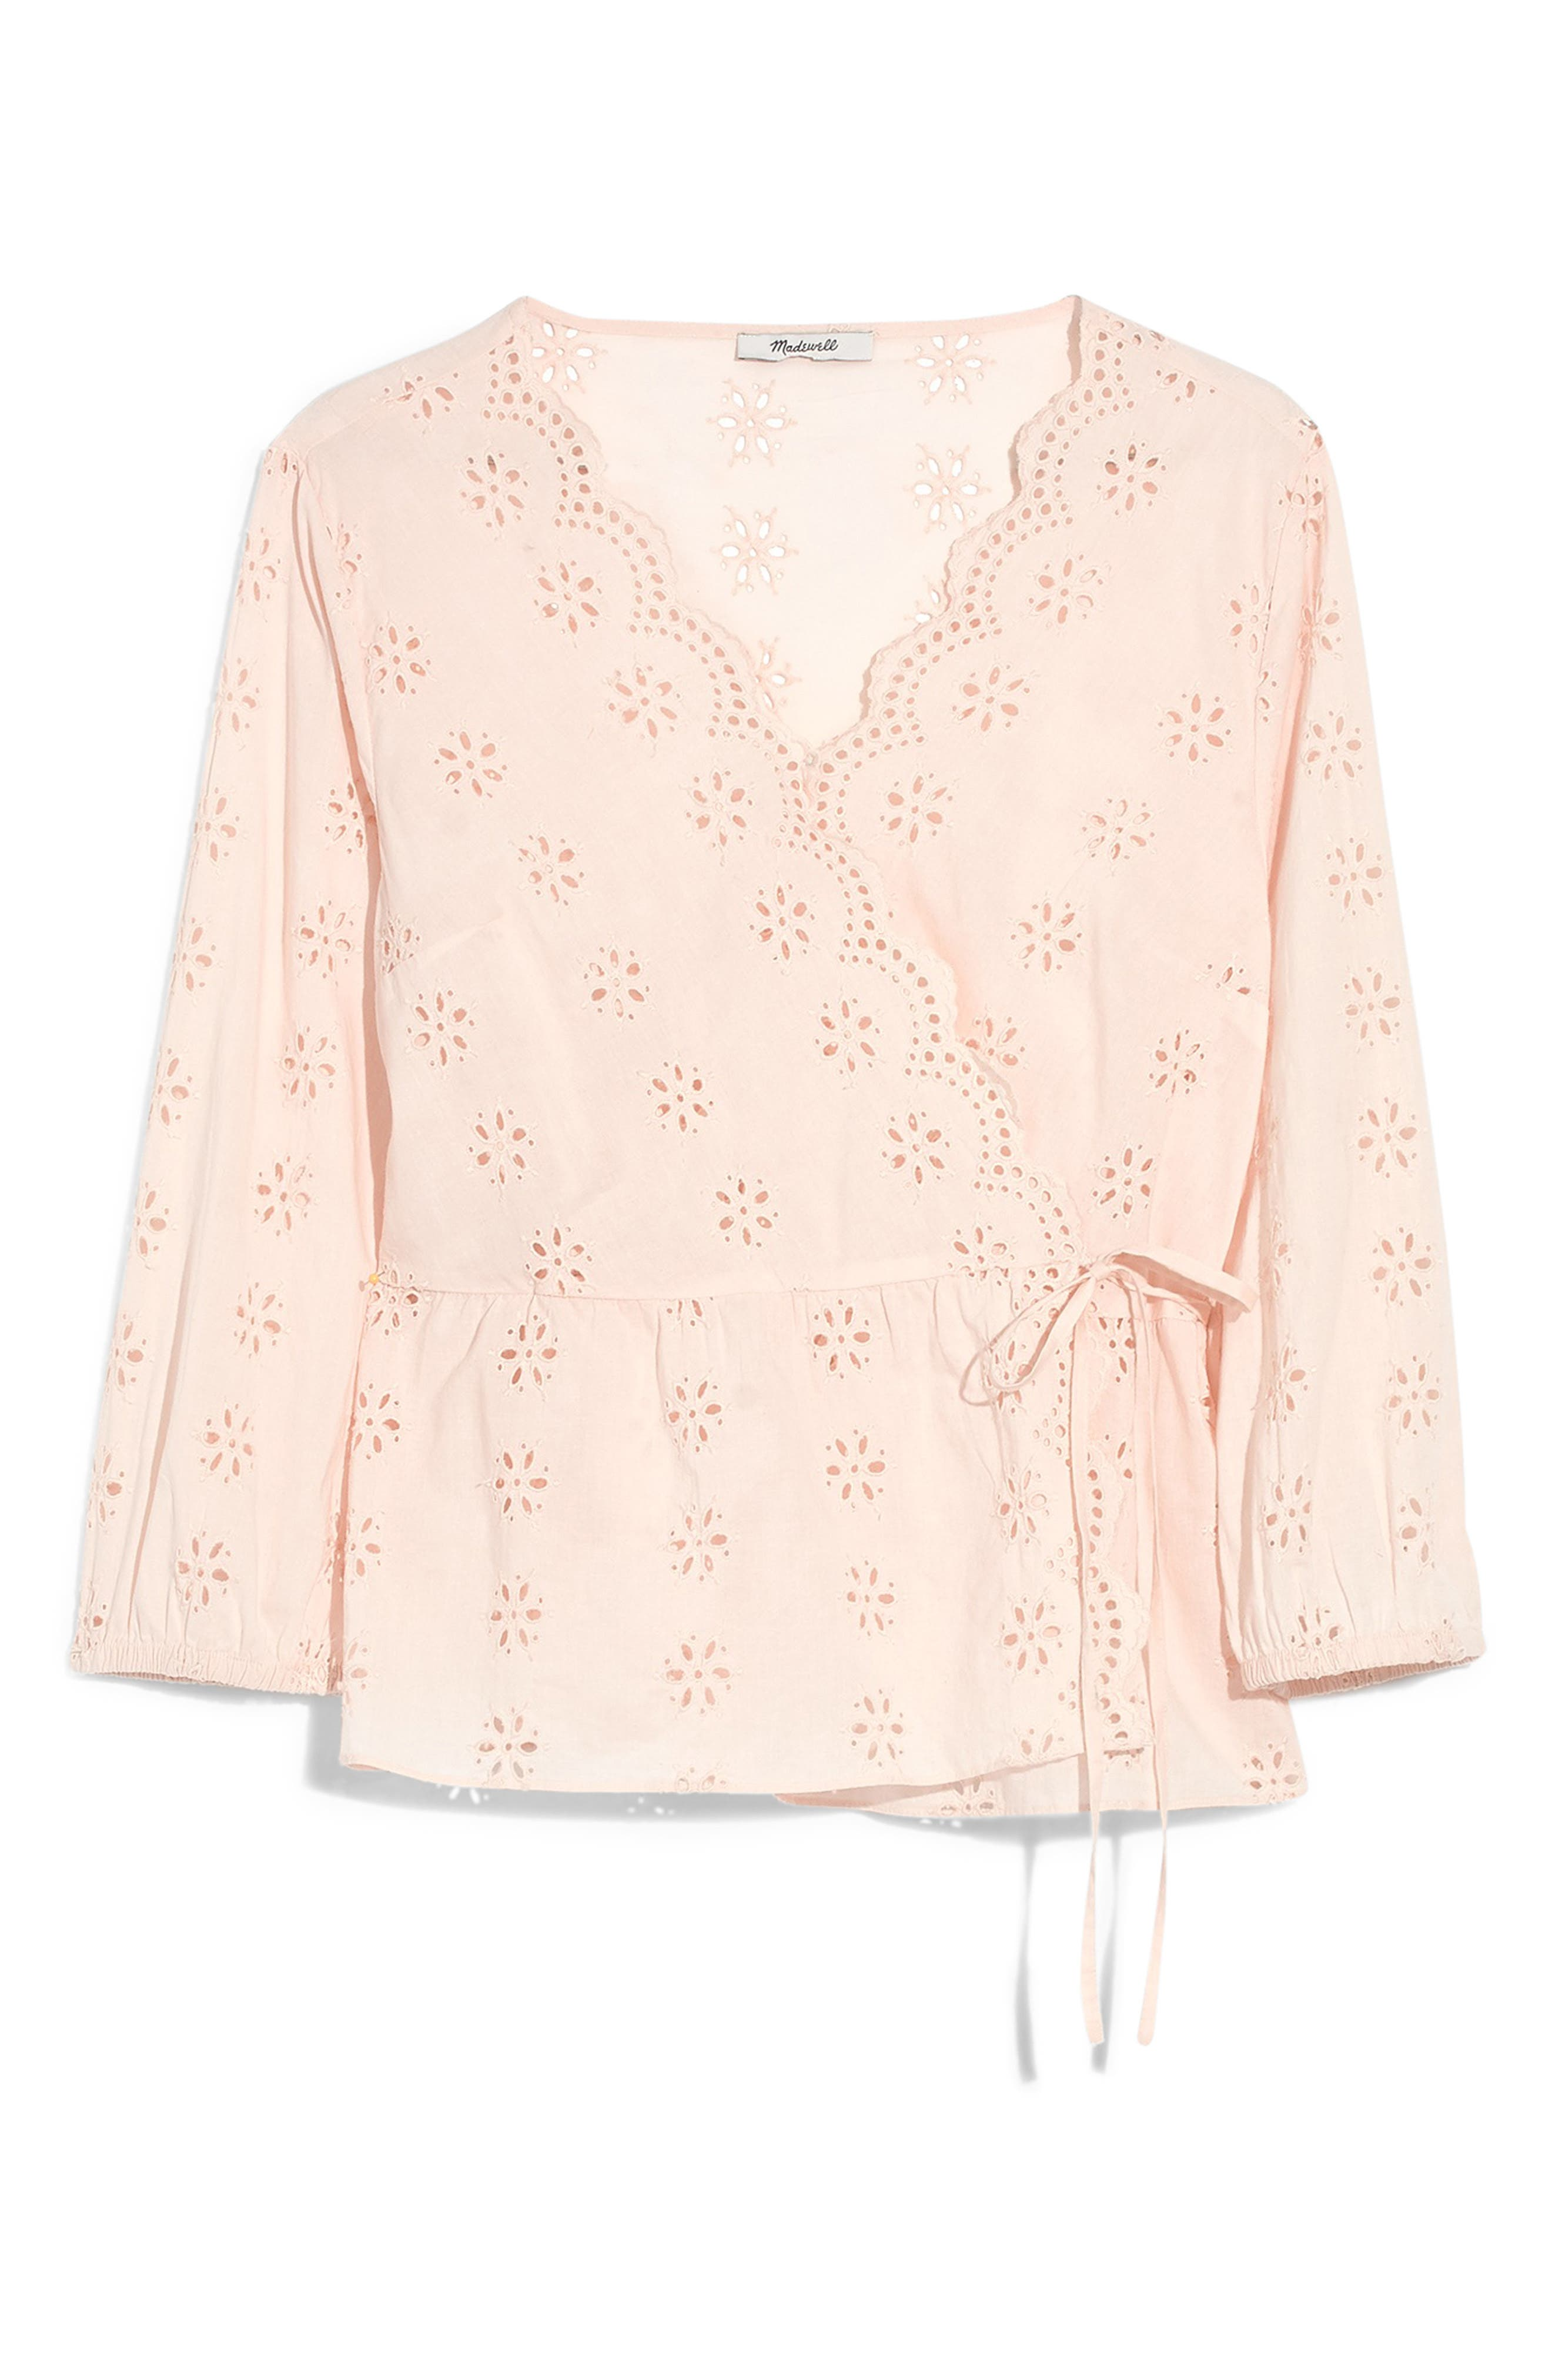 MADEWELL Scalloped Eyelet Wrap Top, Main, color, ANTIQUE LACE